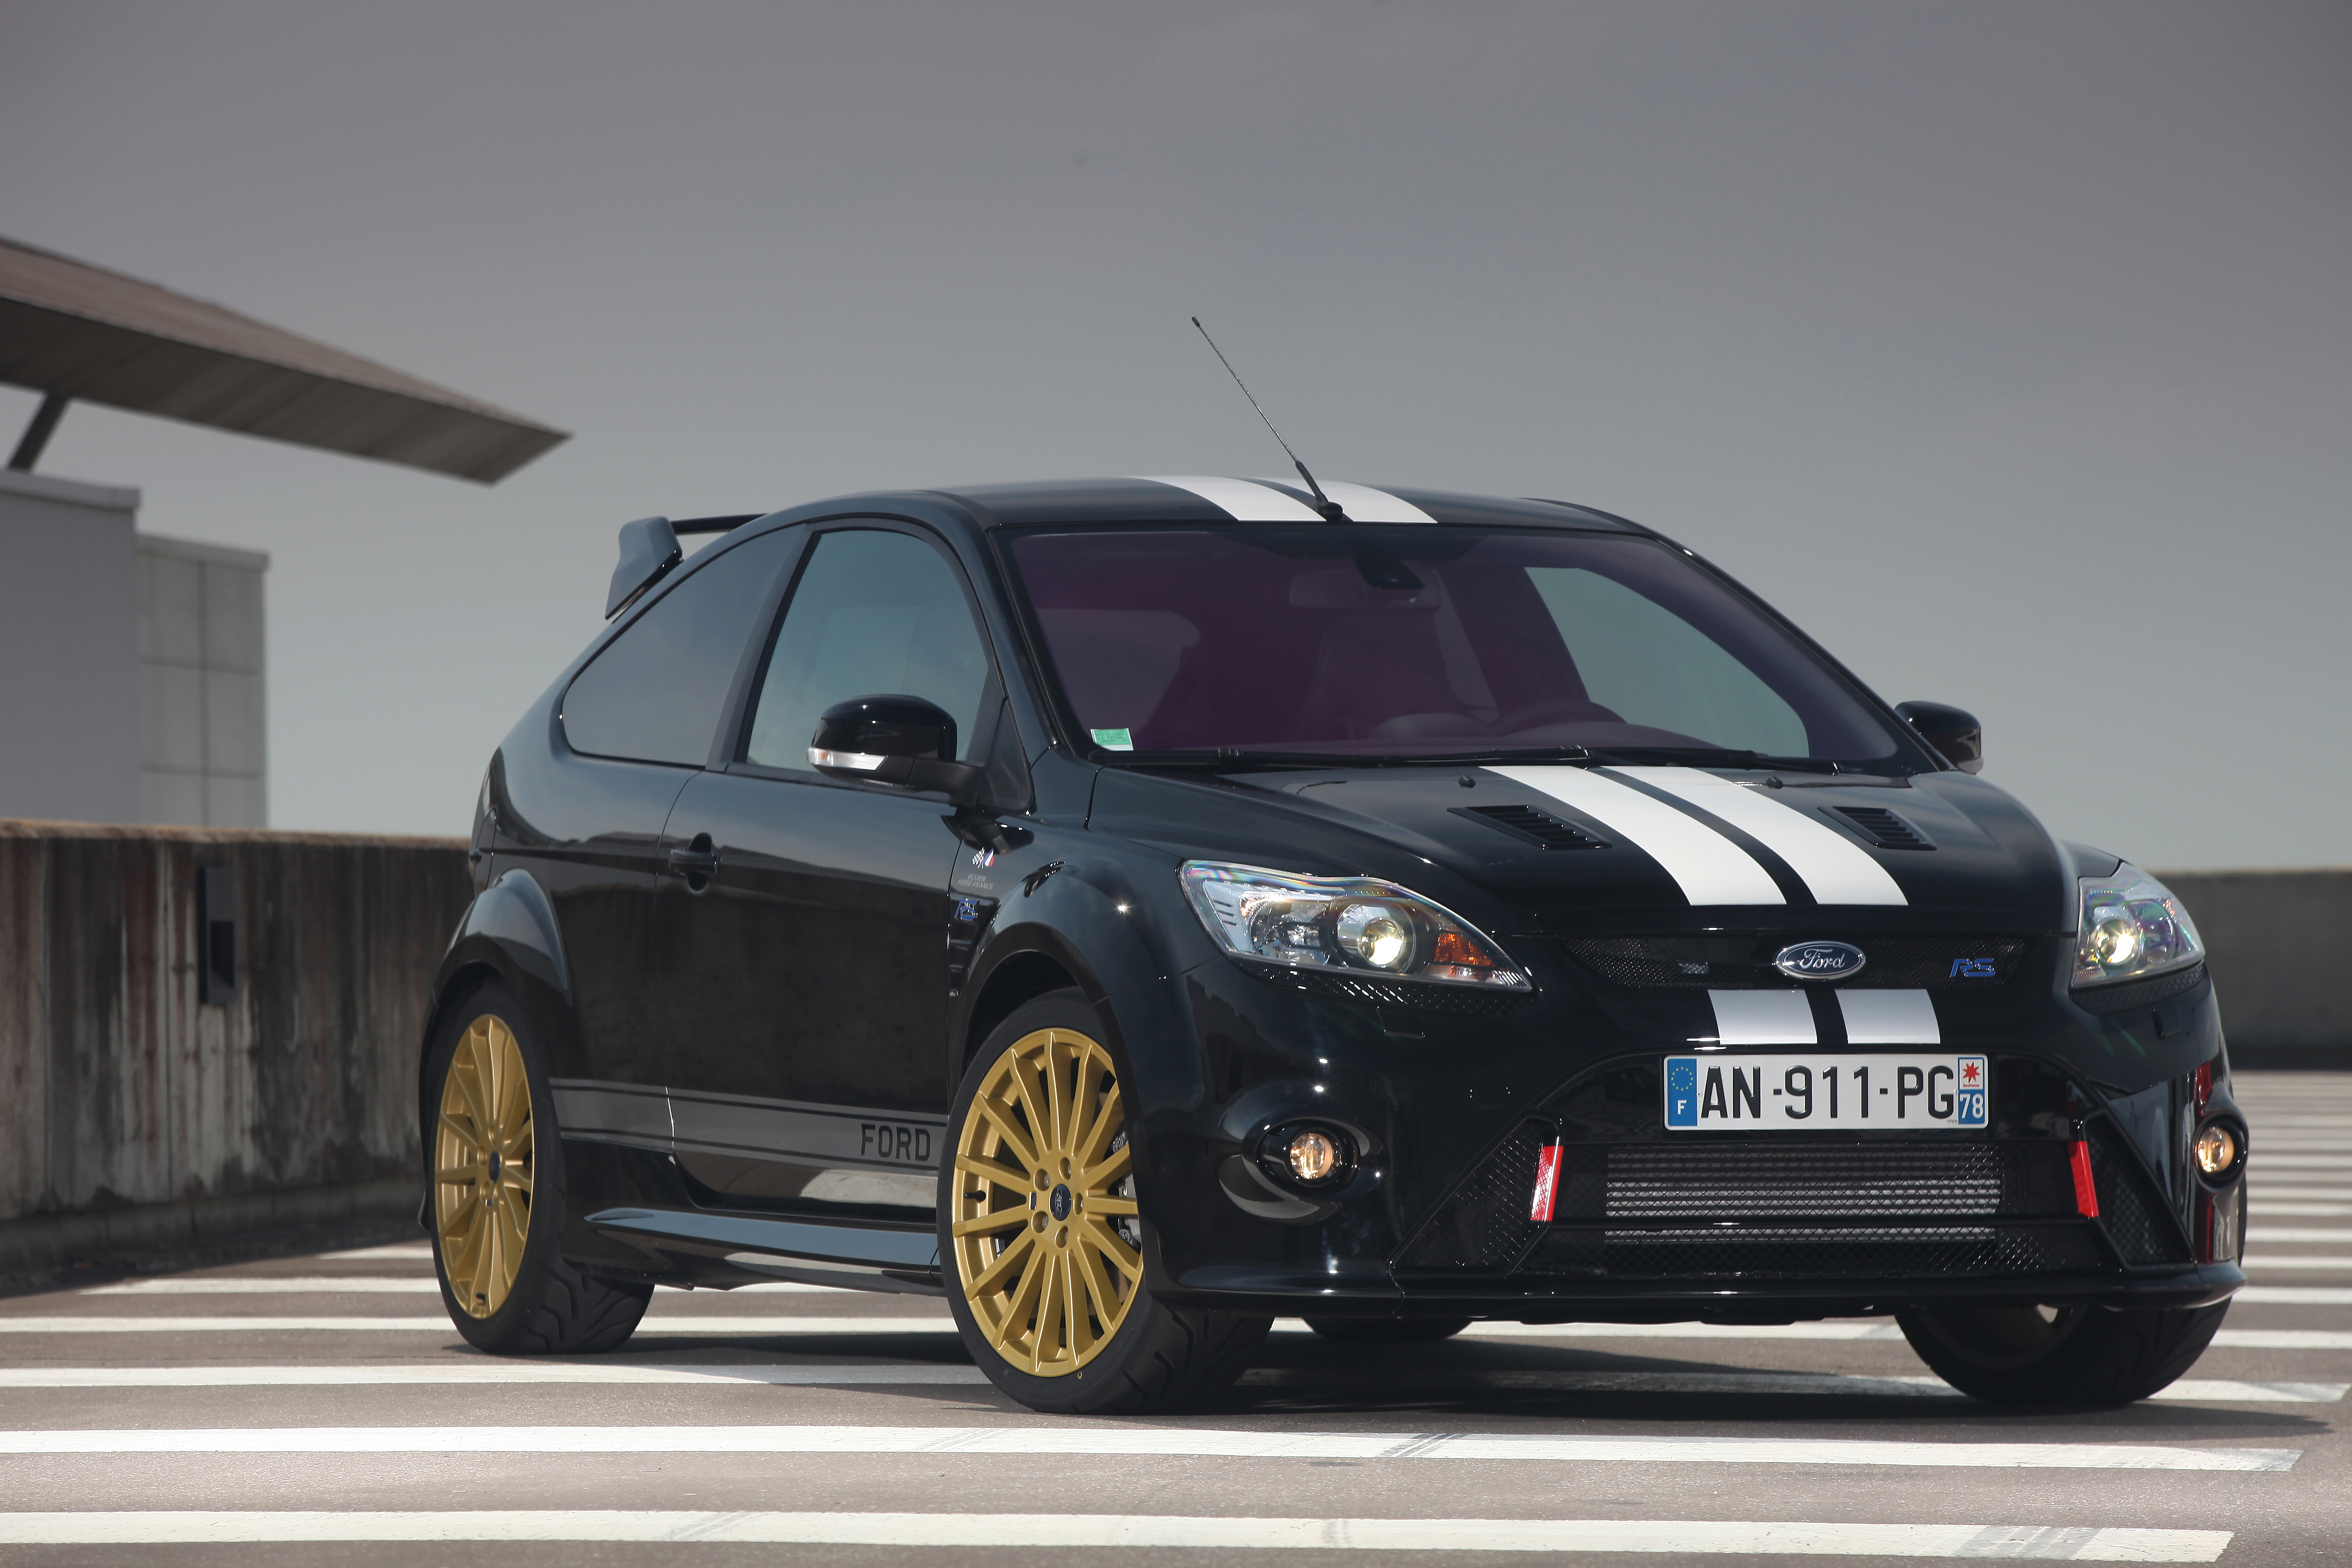 2016 ford focus rs rumor will ford make an awd focus super hatch and sell it in the us. Black Bedroom Furniture Sets. Home Design Ideas